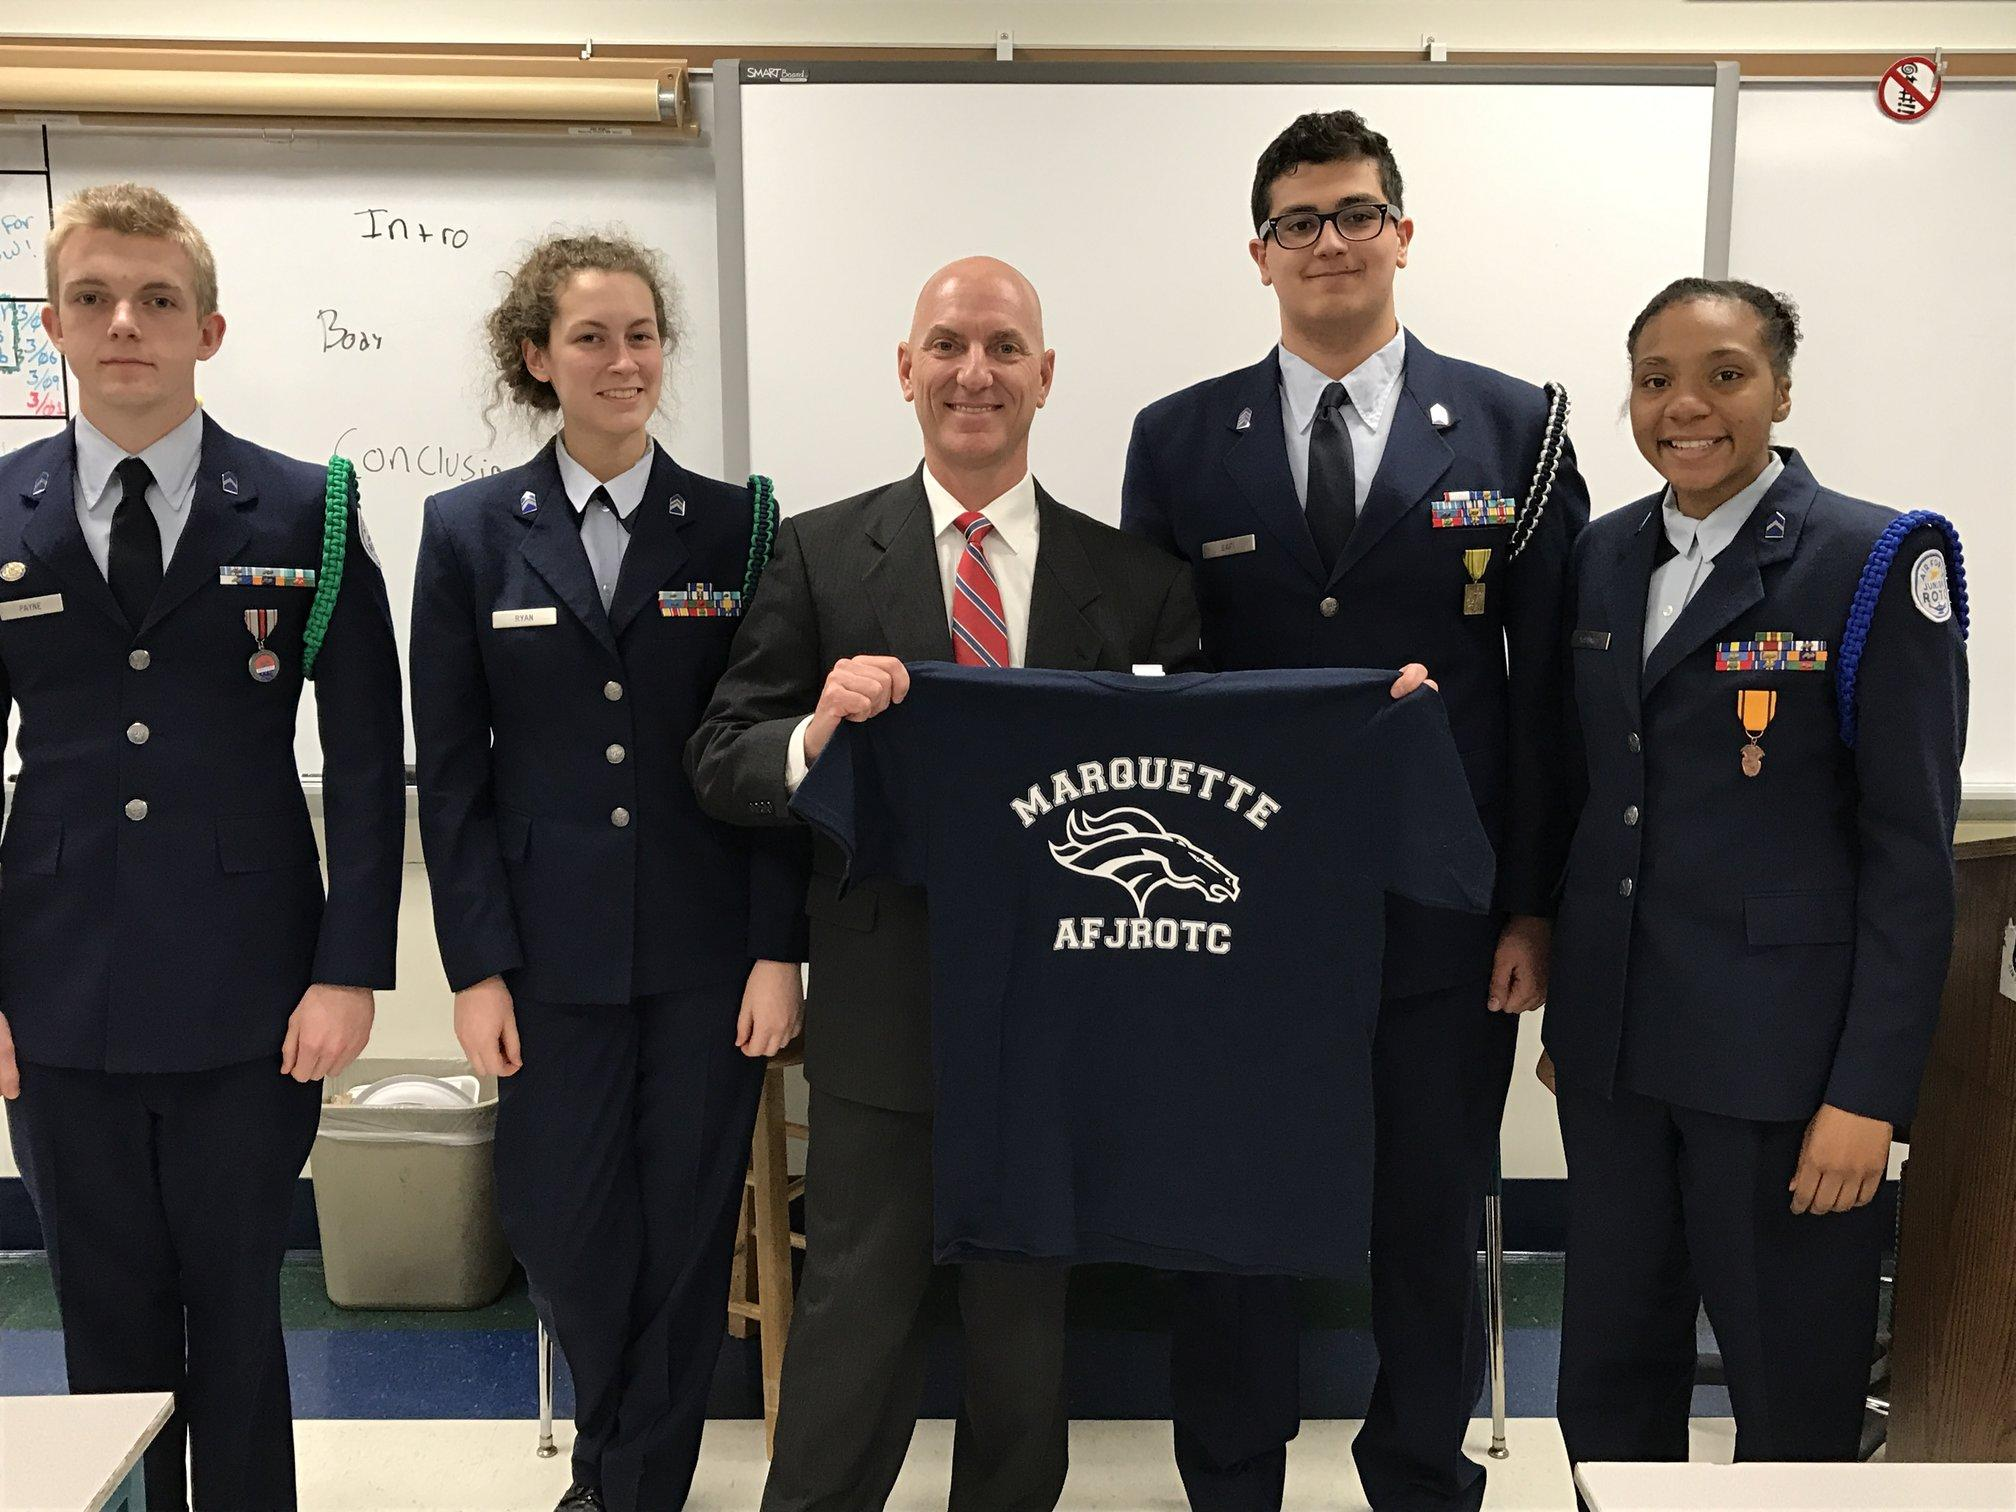 Inspector (Col-Ret) Todd Taylor and the Presentation Team hold up a MHS AFJROTC shirt.